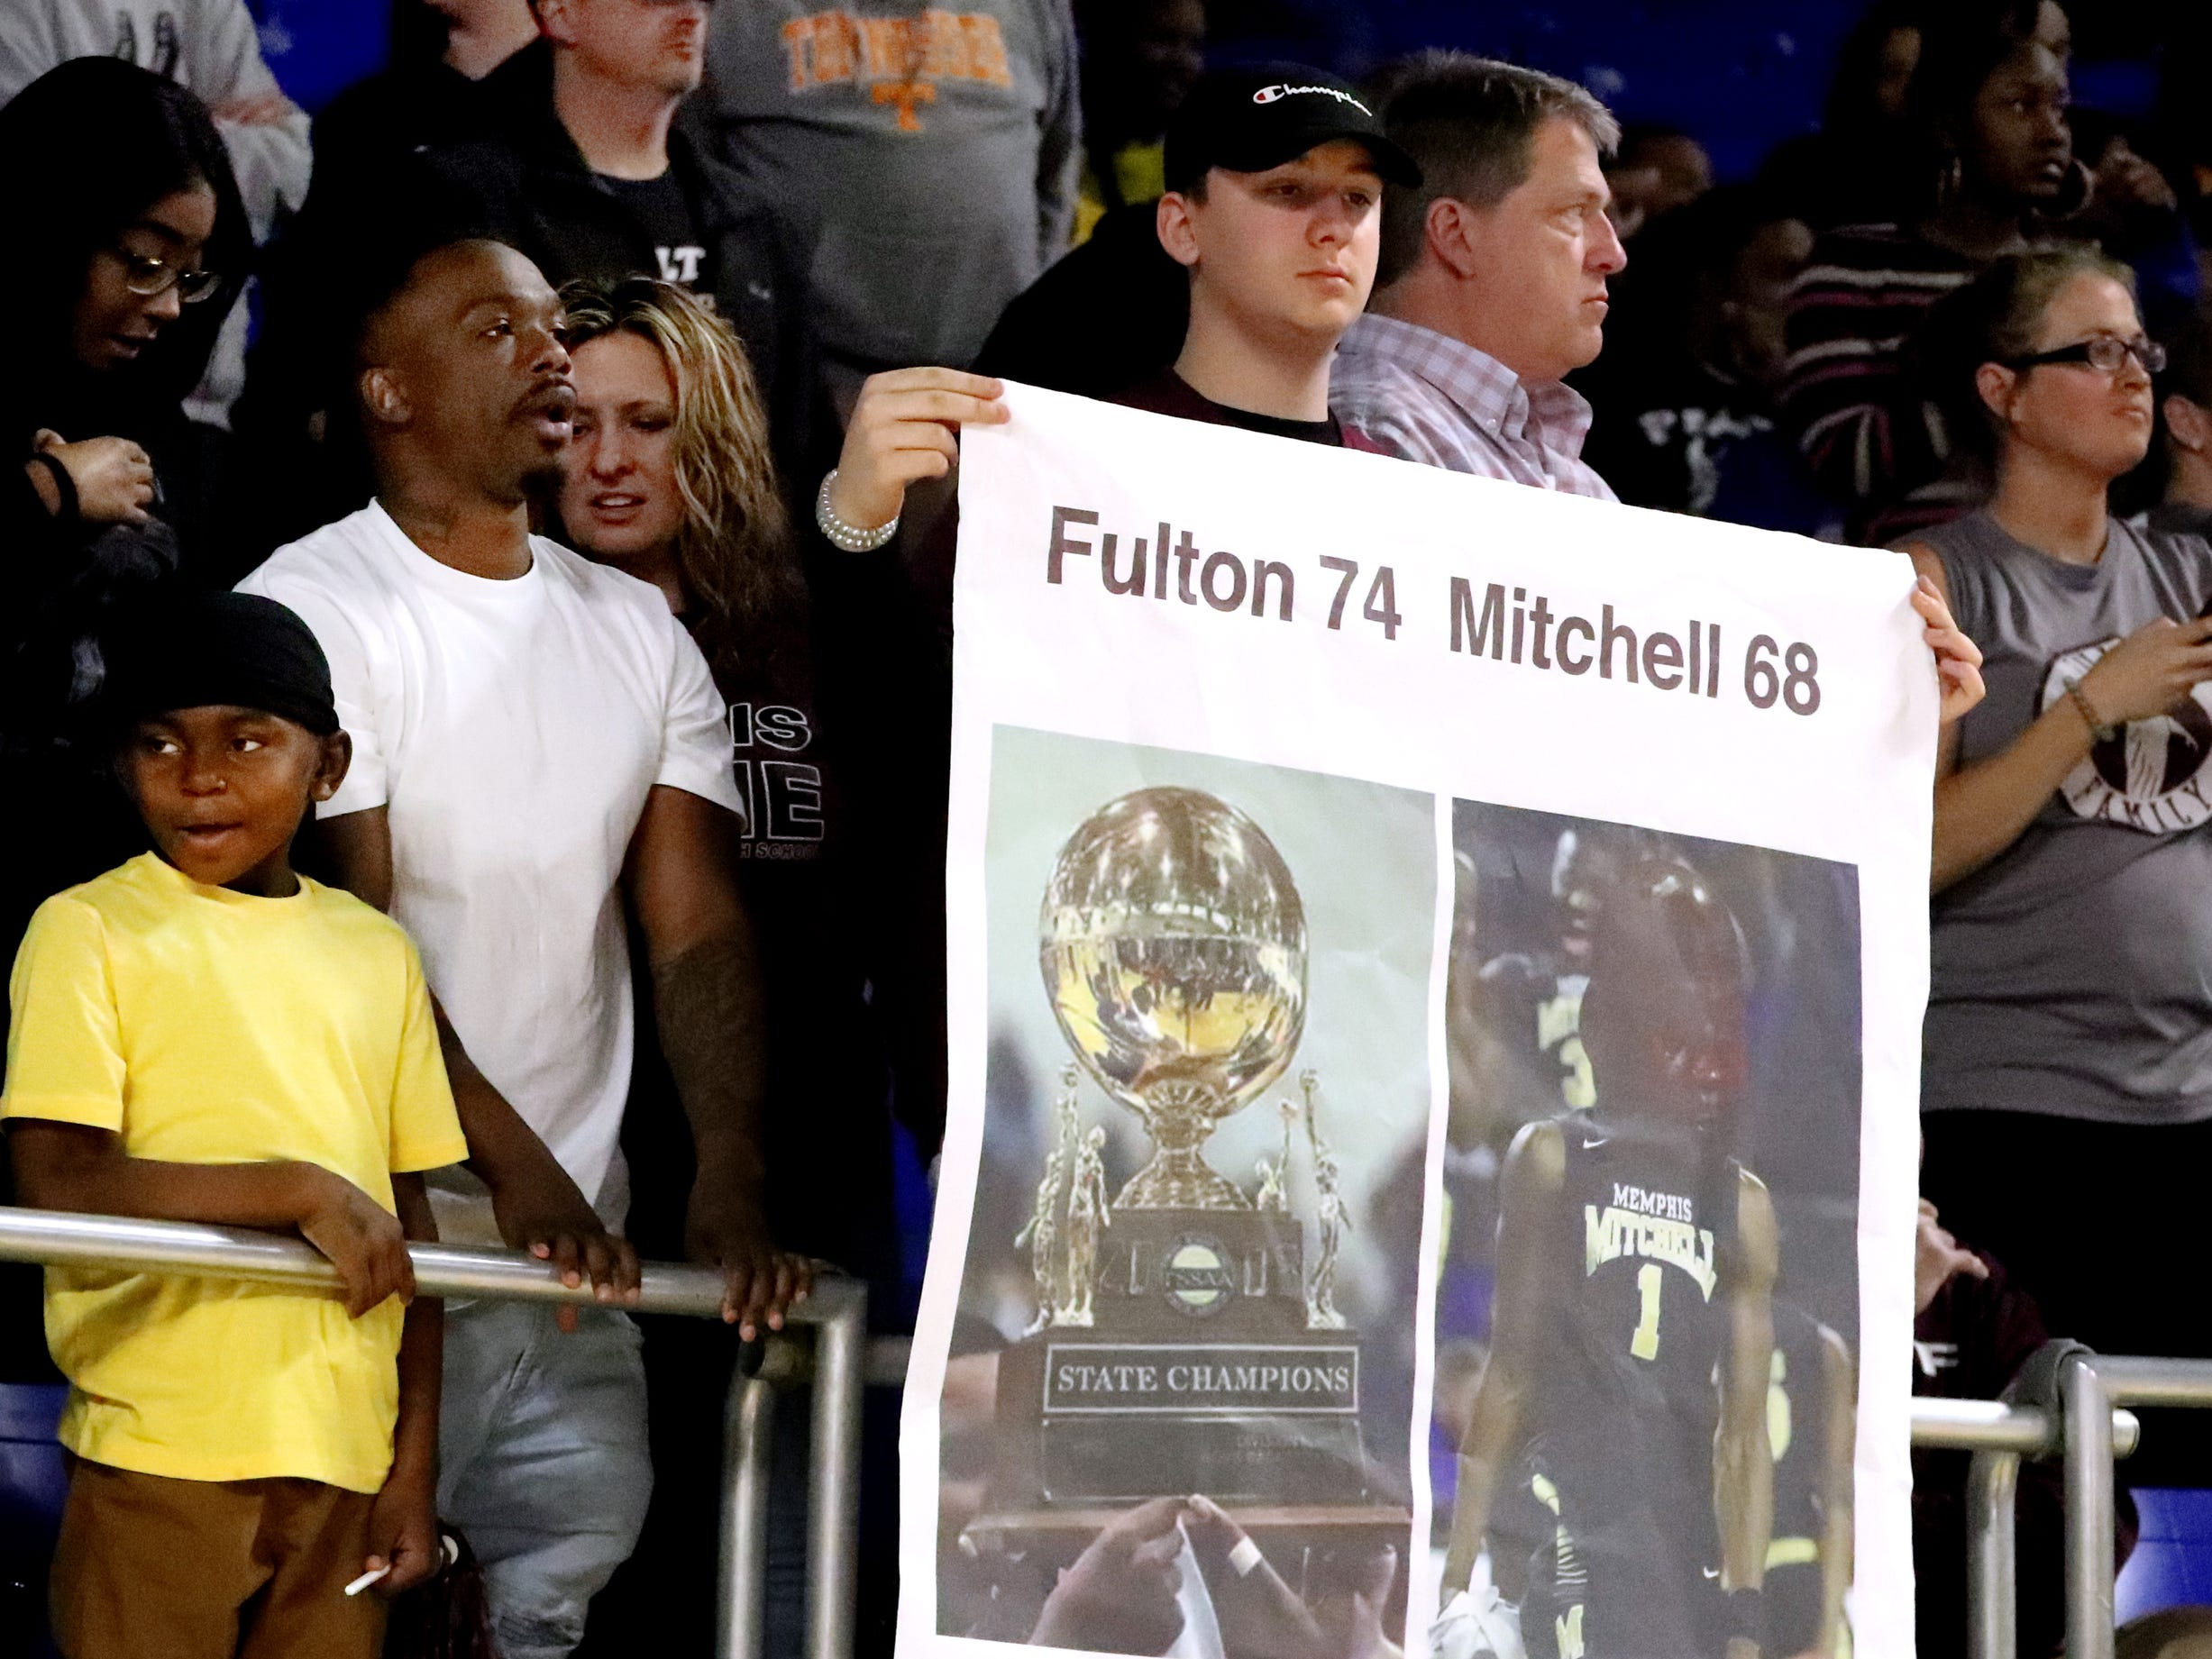 A Fan hold up a banner in the crowd showing the results of a former matchup between Mitchell and Fulton in 2008 resulting in Fulton winning the State Championship, after Fulton beat Mitchell during the over time quarterfinal round of the TSSAA Class AA Boys State Tournament, on Wednesday, March 13, 2019, at Murphy Center in Murfreesboro, Tenn.